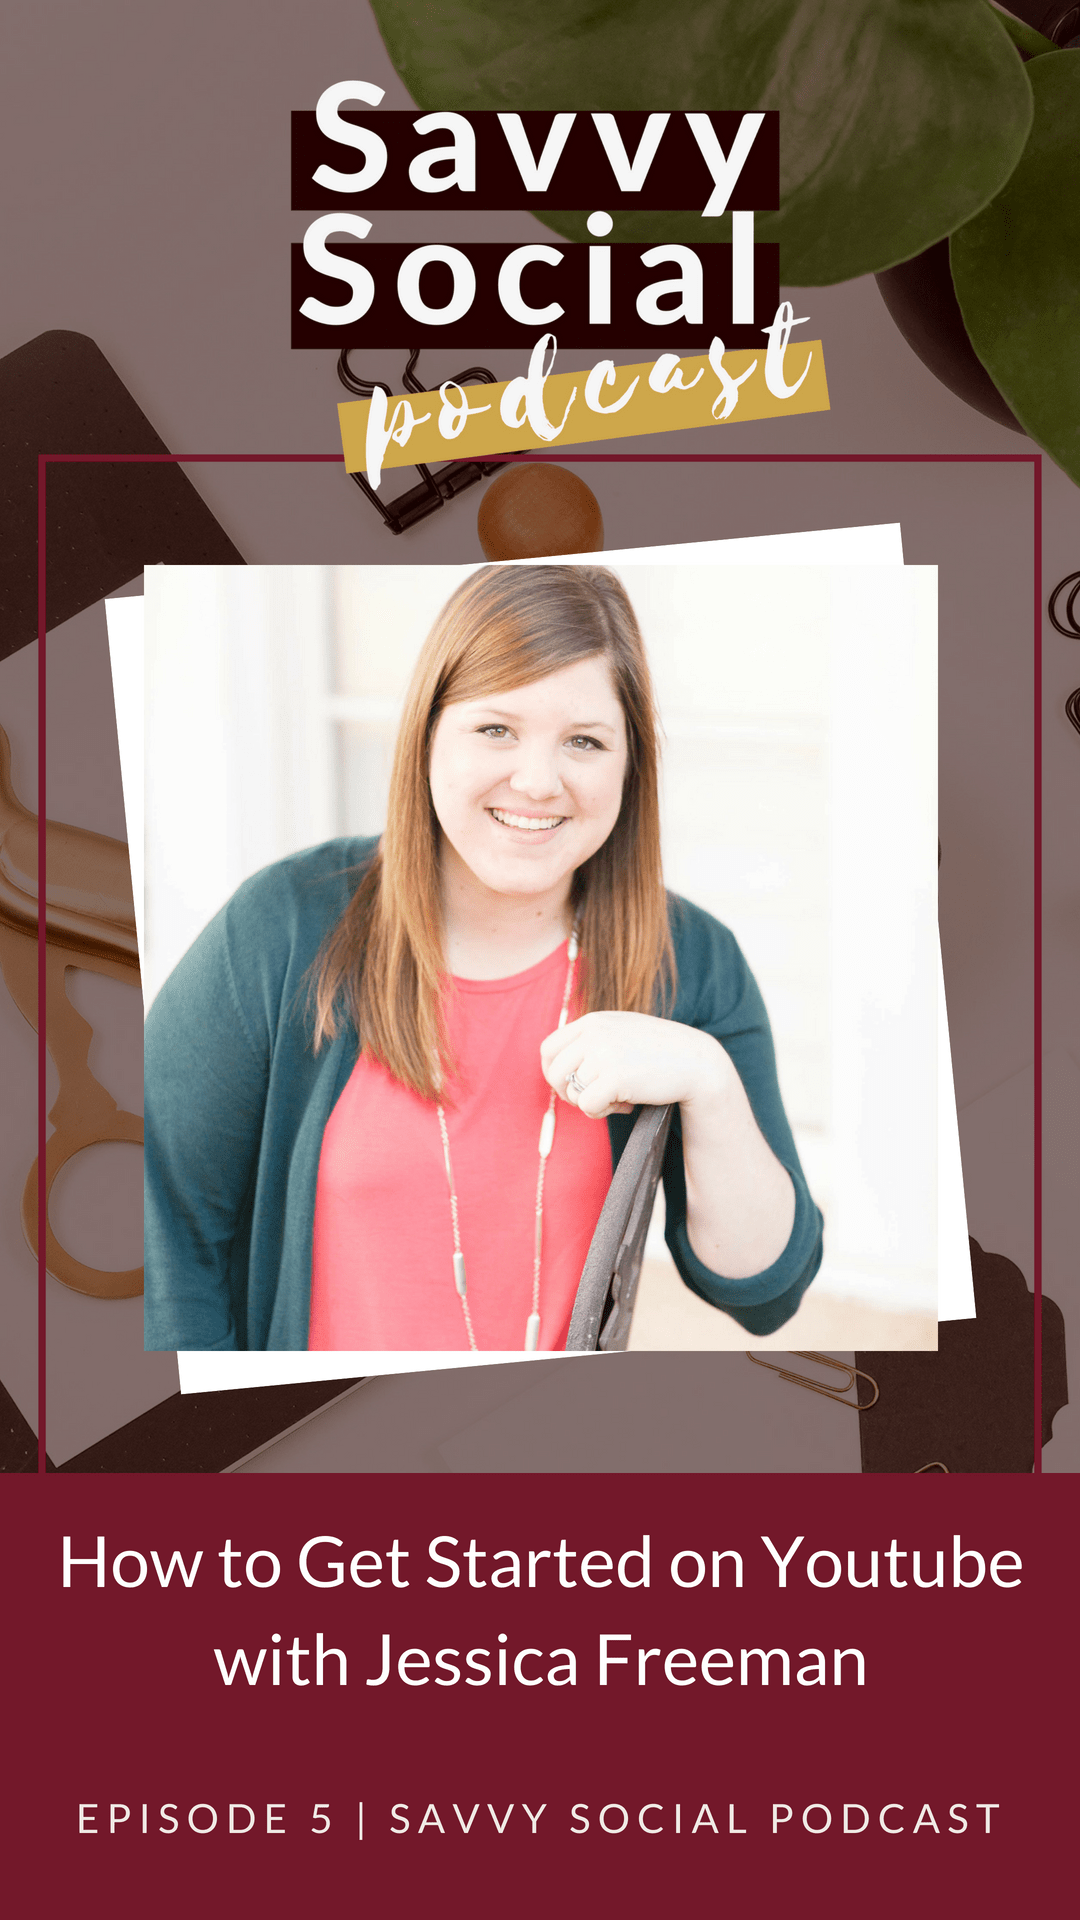 Are you struggling to get started on YouTube? Listen into today's episode as Jessica Freeman of Jess Creatives shares her amazing YouTube journey. We're learning how to get started on YouTube, what Jess did to get her first client from YouTube, and how you can use YouTube to build the right exposure for your business.